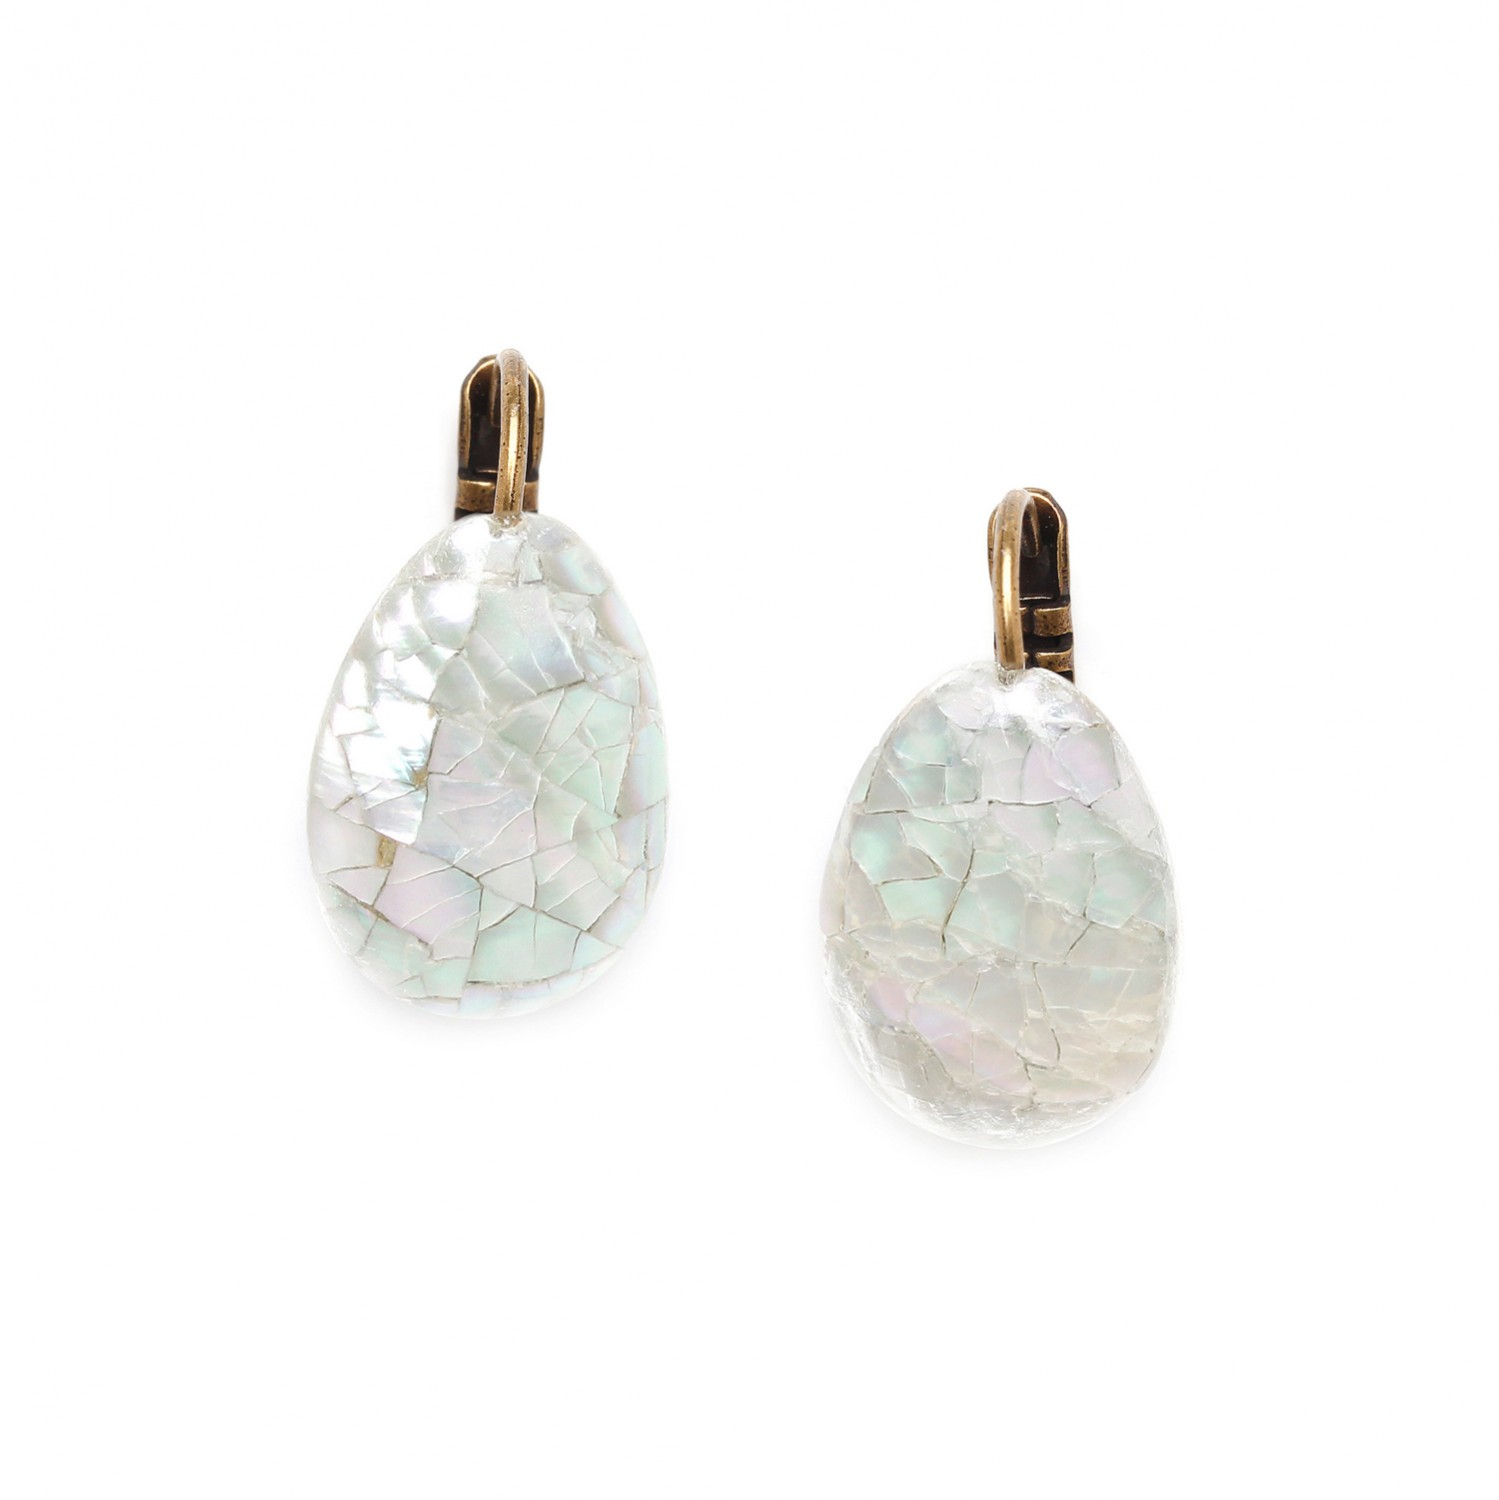 FOREST THERAPY cracking earrings